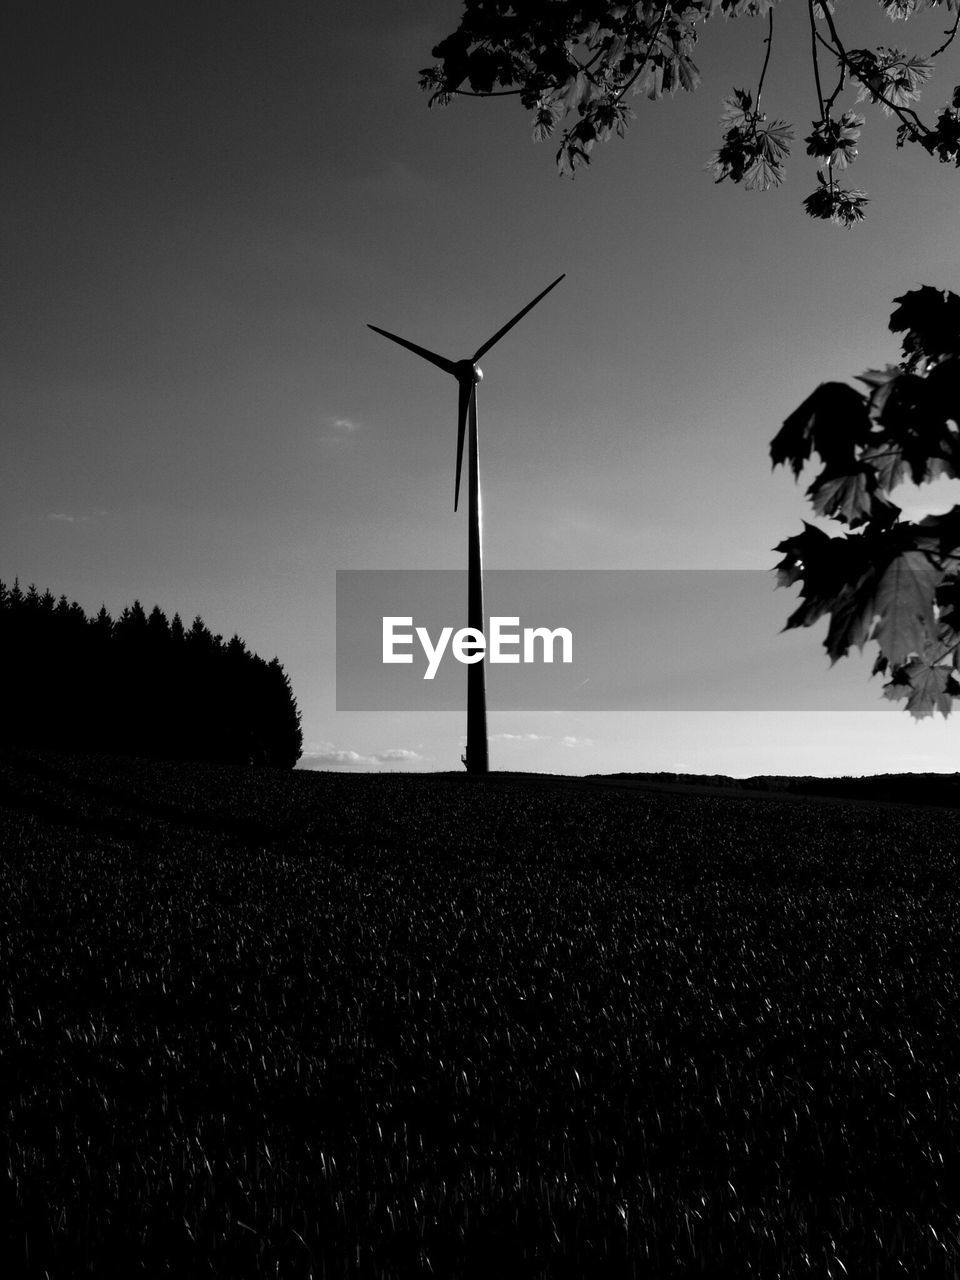 wind power, wind turbine, alternative energy, fuel and power generation, environmental conservation, renewable energy, windmill, field, rural scene, industrial windmill, agriculture, technology, nature, sky, traditional windmill, landscape, tranquility, scenics, beauty in nature, outdoors, no people, growth, day, tree, electricity, sunset, low angle view, power in nature